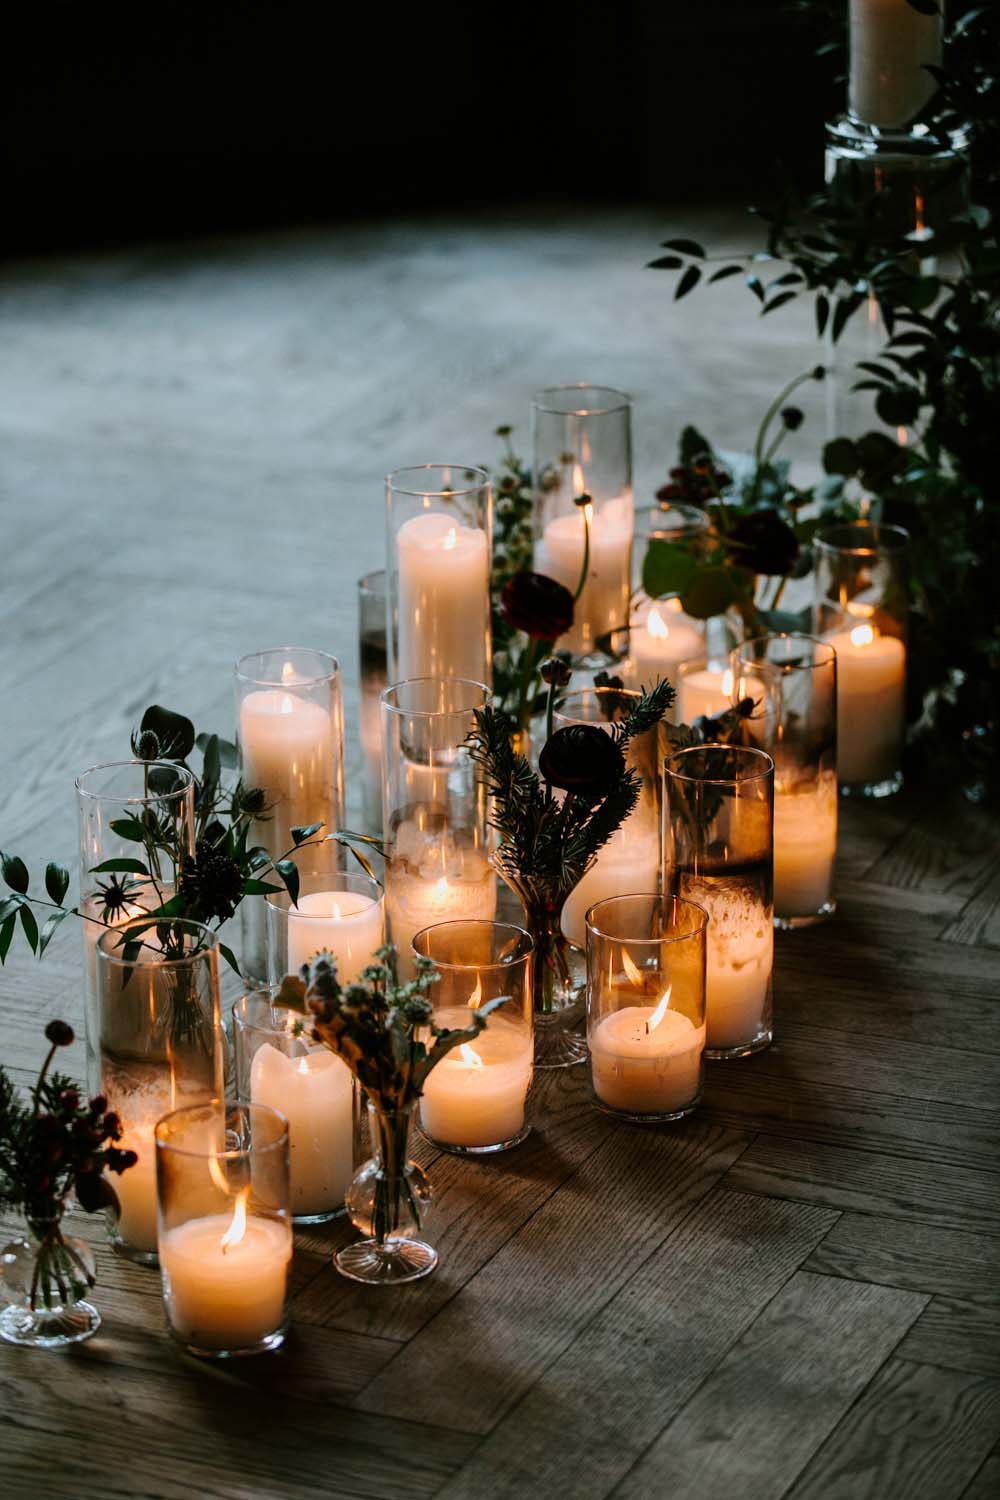 cozy romantic winter wedding candle lights decoration